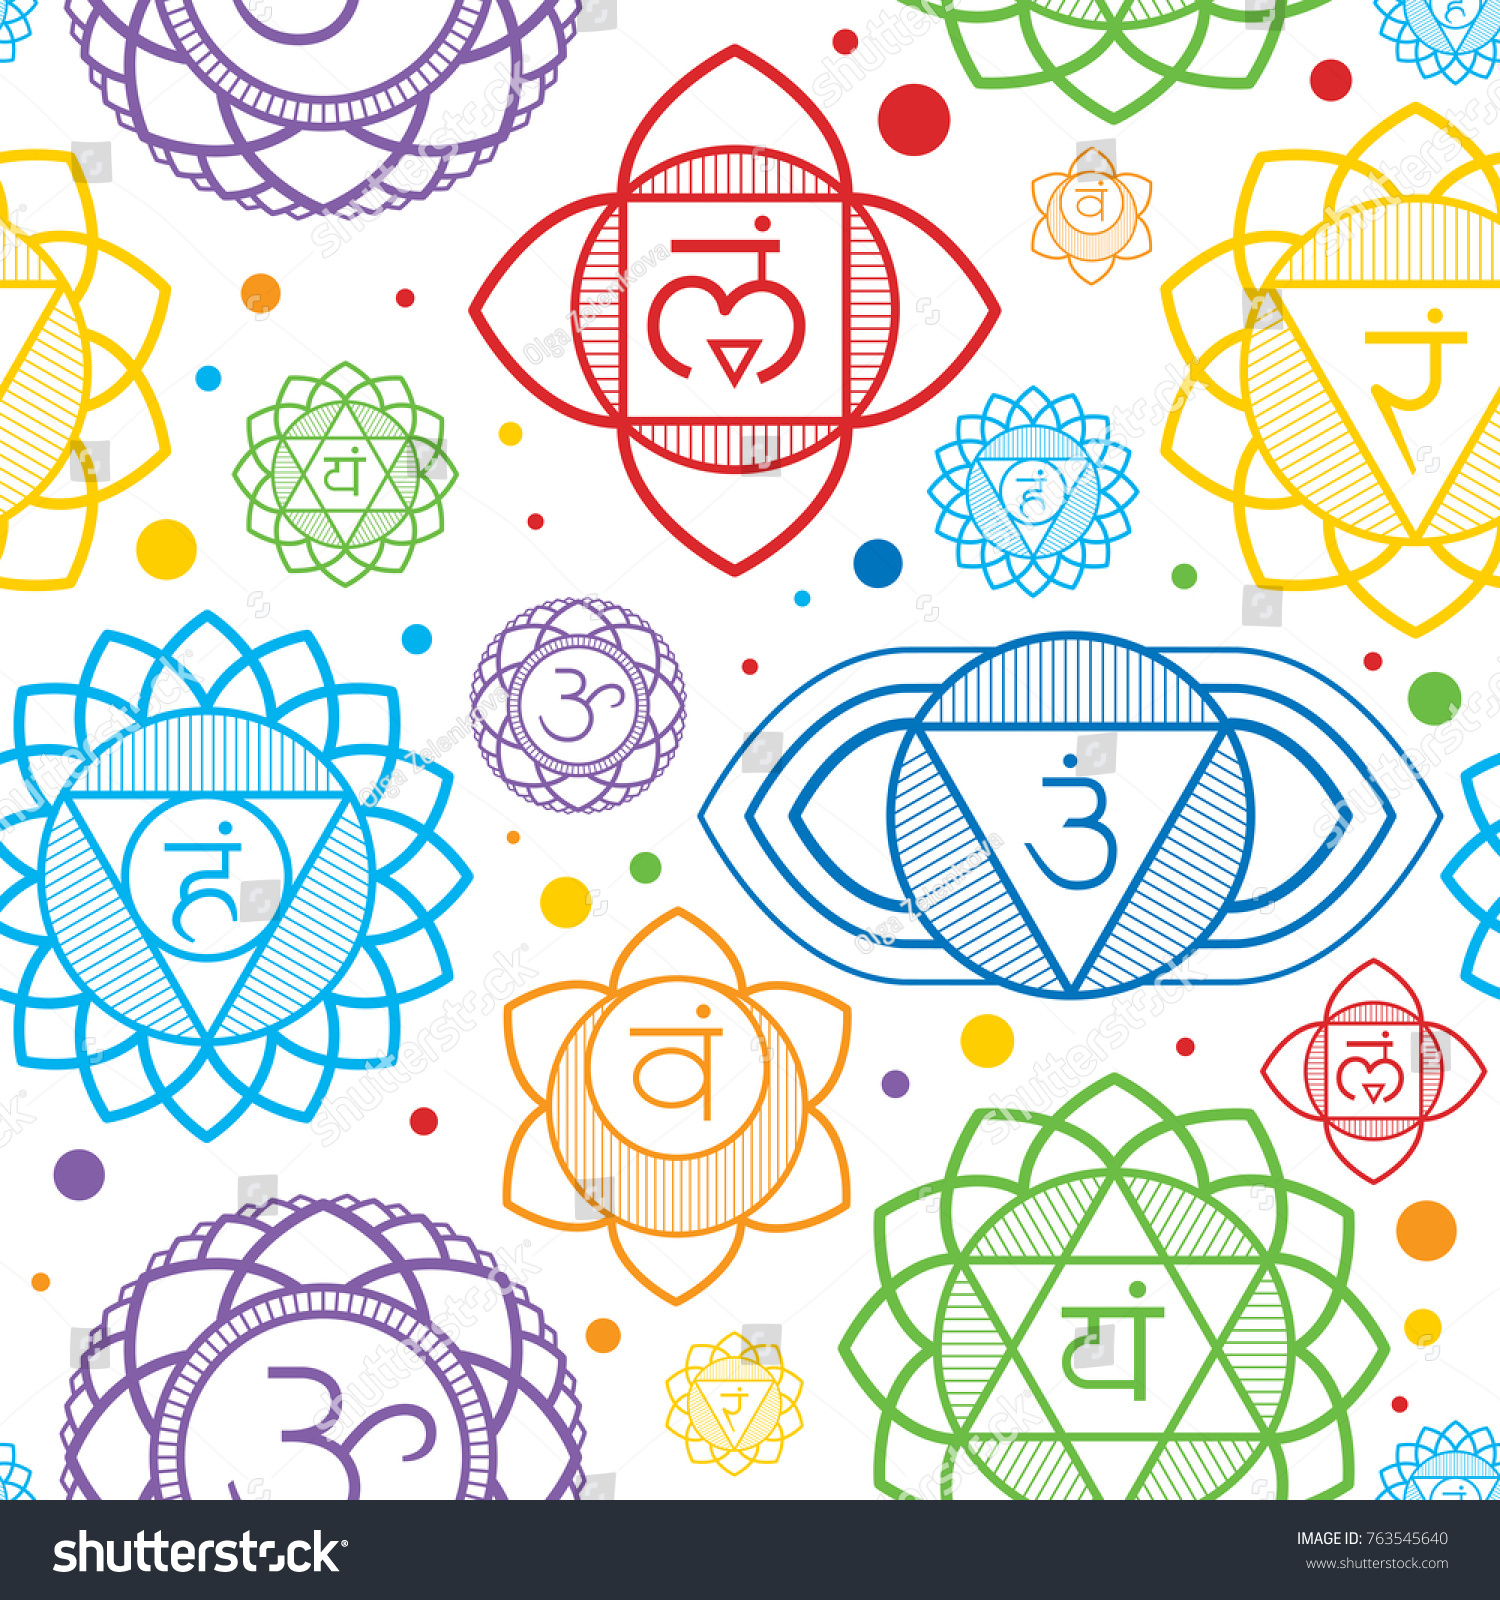 Seamless repeat pattern chakras symbols energy stock vector seamless repeat pattern with chakras symbols of energy centers of human body used in hinduism buycottarizona Gallery